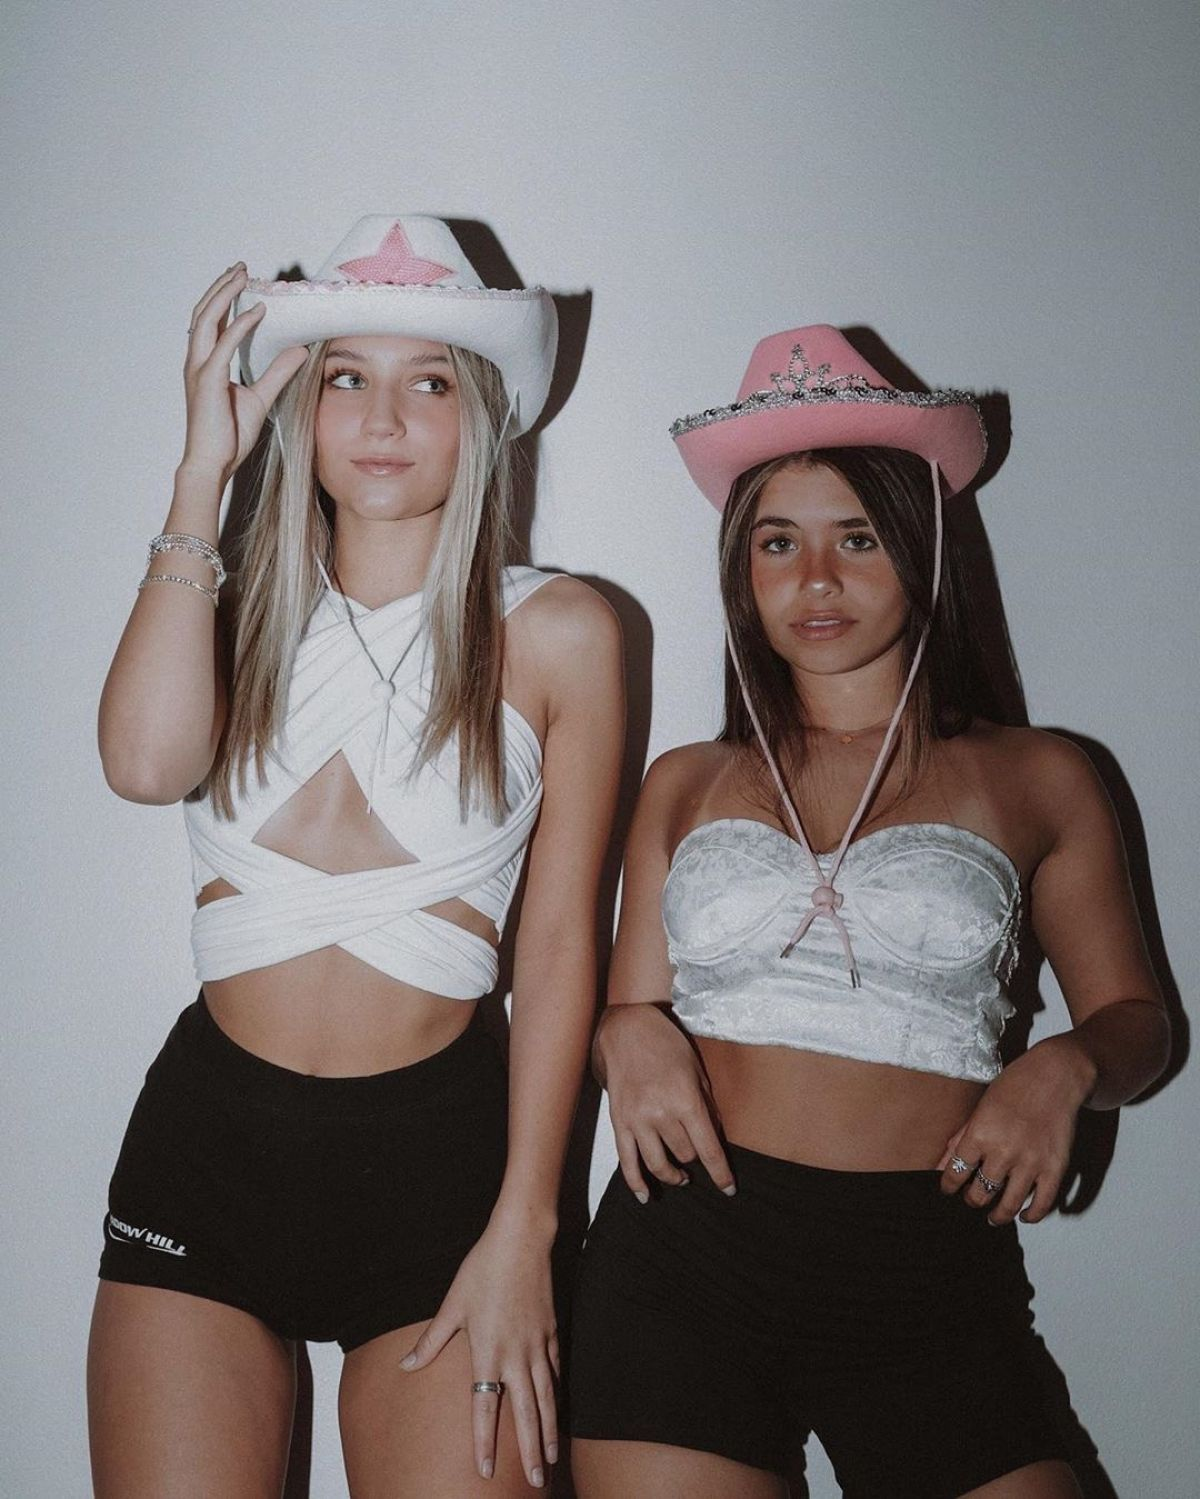 MADS LEWIS and NESSA BARRETT at a Photoshoot, June